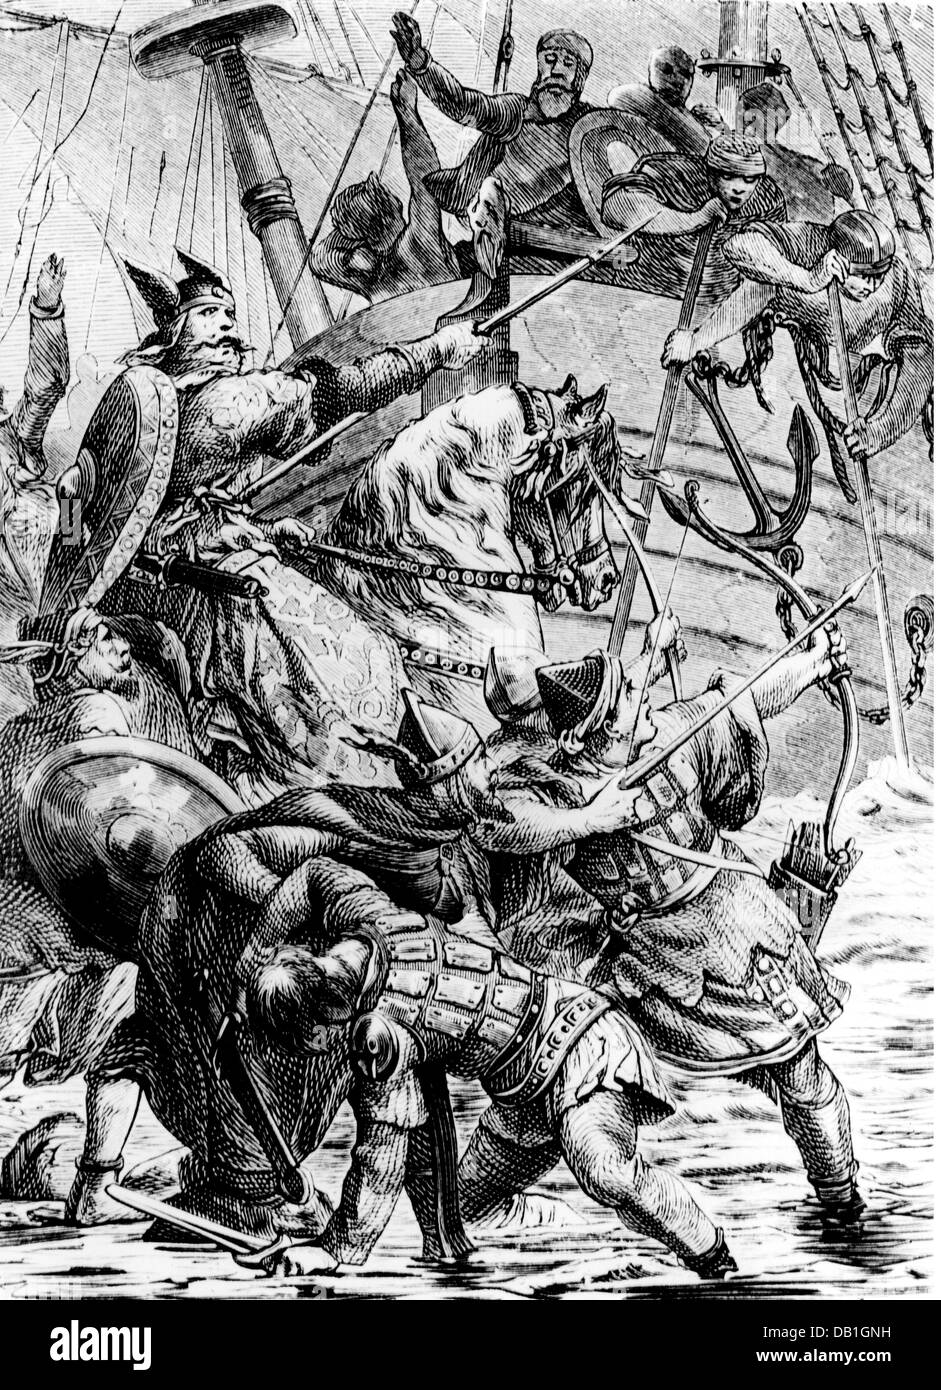 literature, Nordic / Icelandic legends, Kudrun, travel of the messengers of king Hetel of Germany to court Hilde - Stock Image